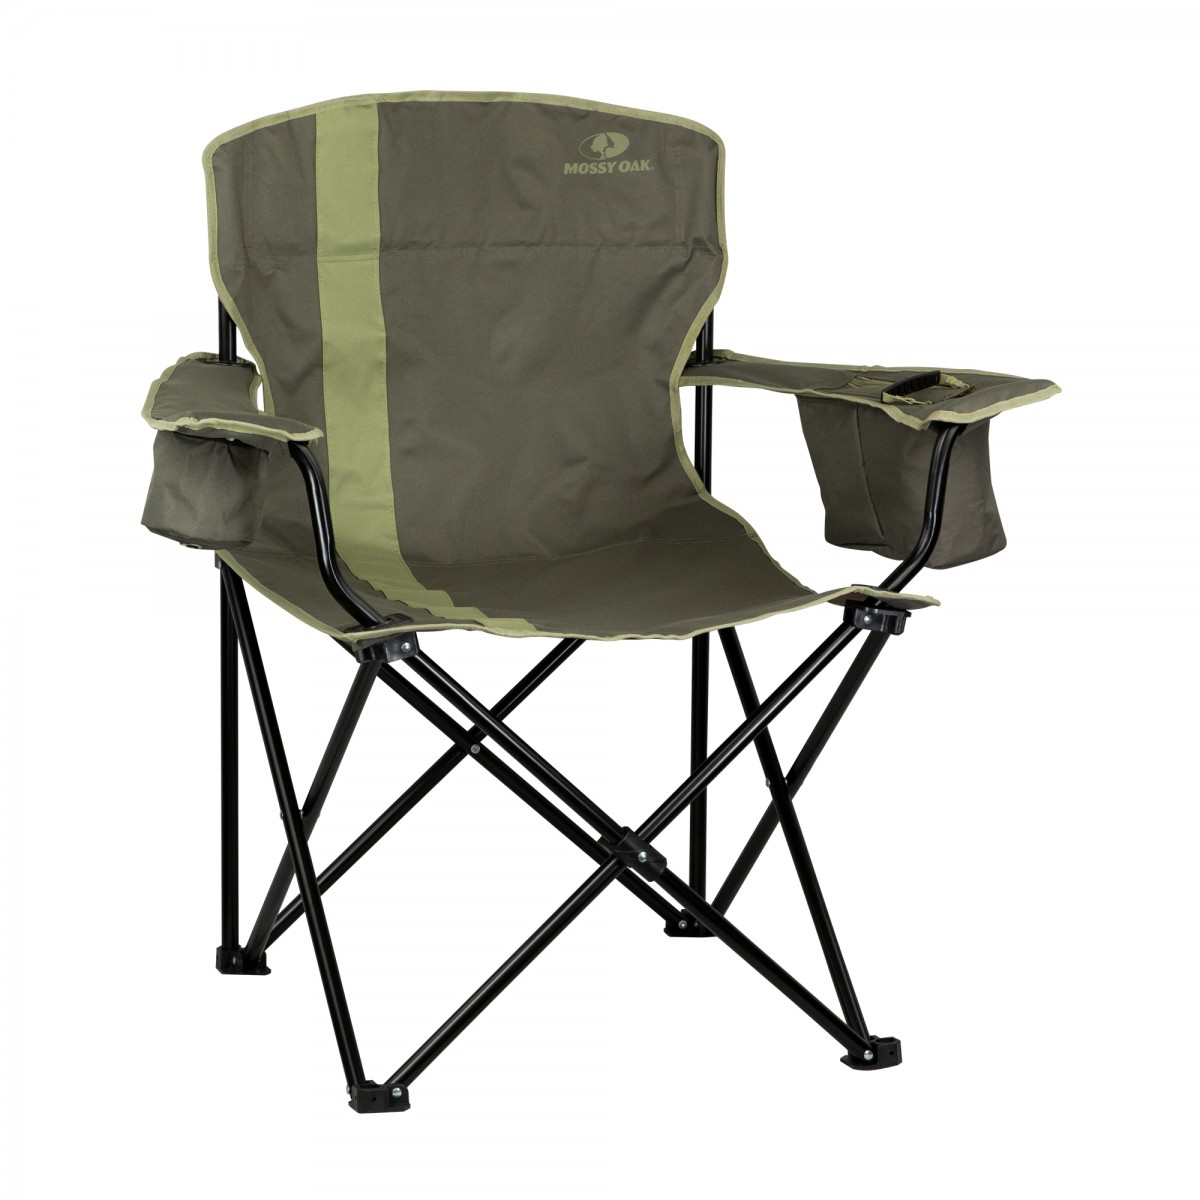 Folding Camp Chair Mossy Oak Deluxe Folding Camping Chair